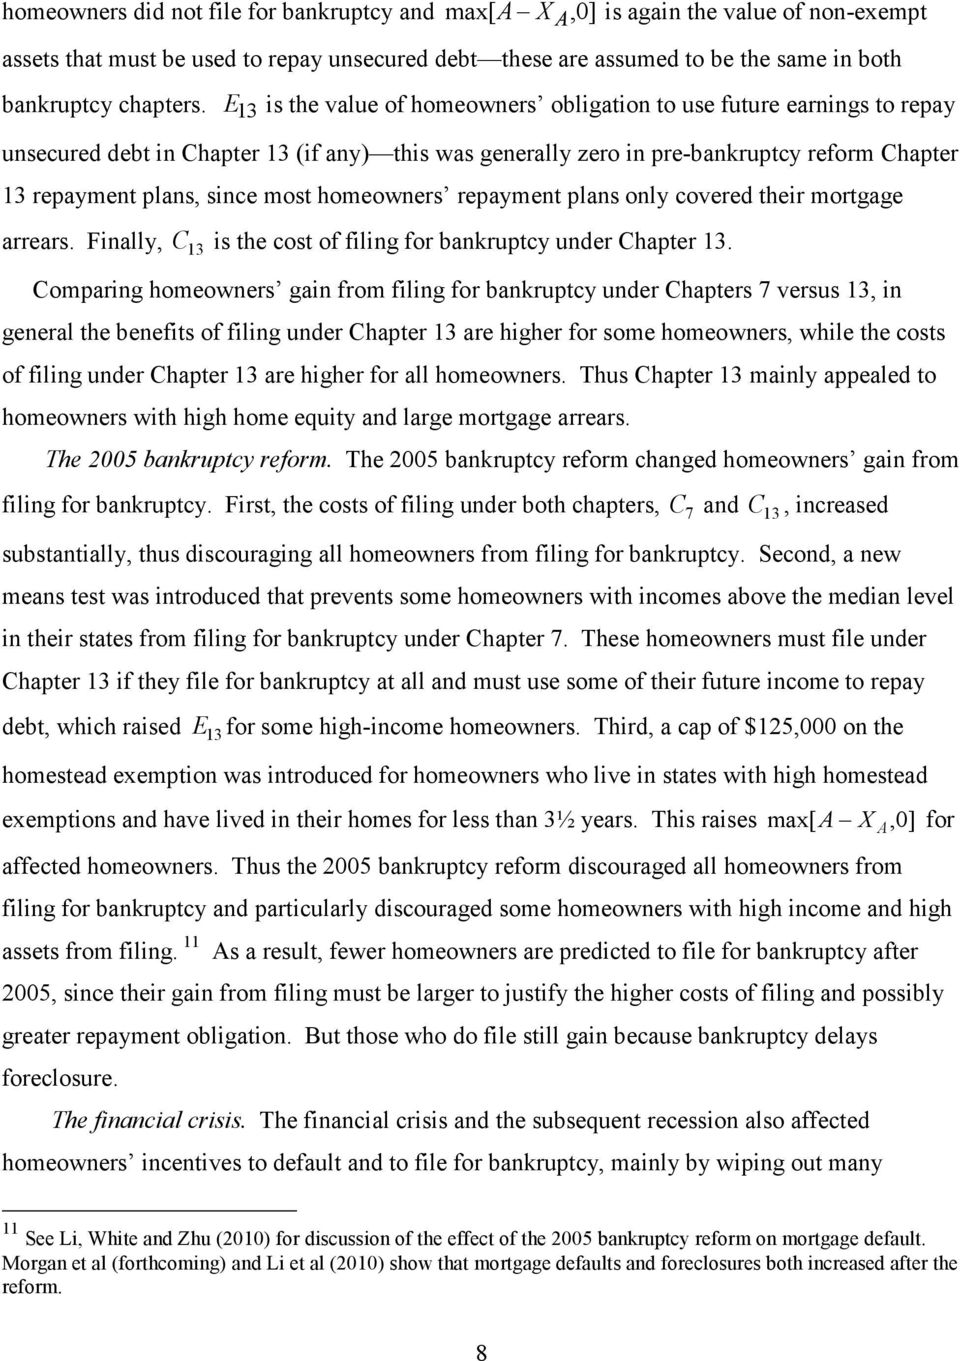 E 13 is the value of homeowners obligation to use future earnings to repay unsecured debt in Chapter 13 (if any) this was generally zero in pre-bankruptcy reform Chapter 13 repayment plans, since